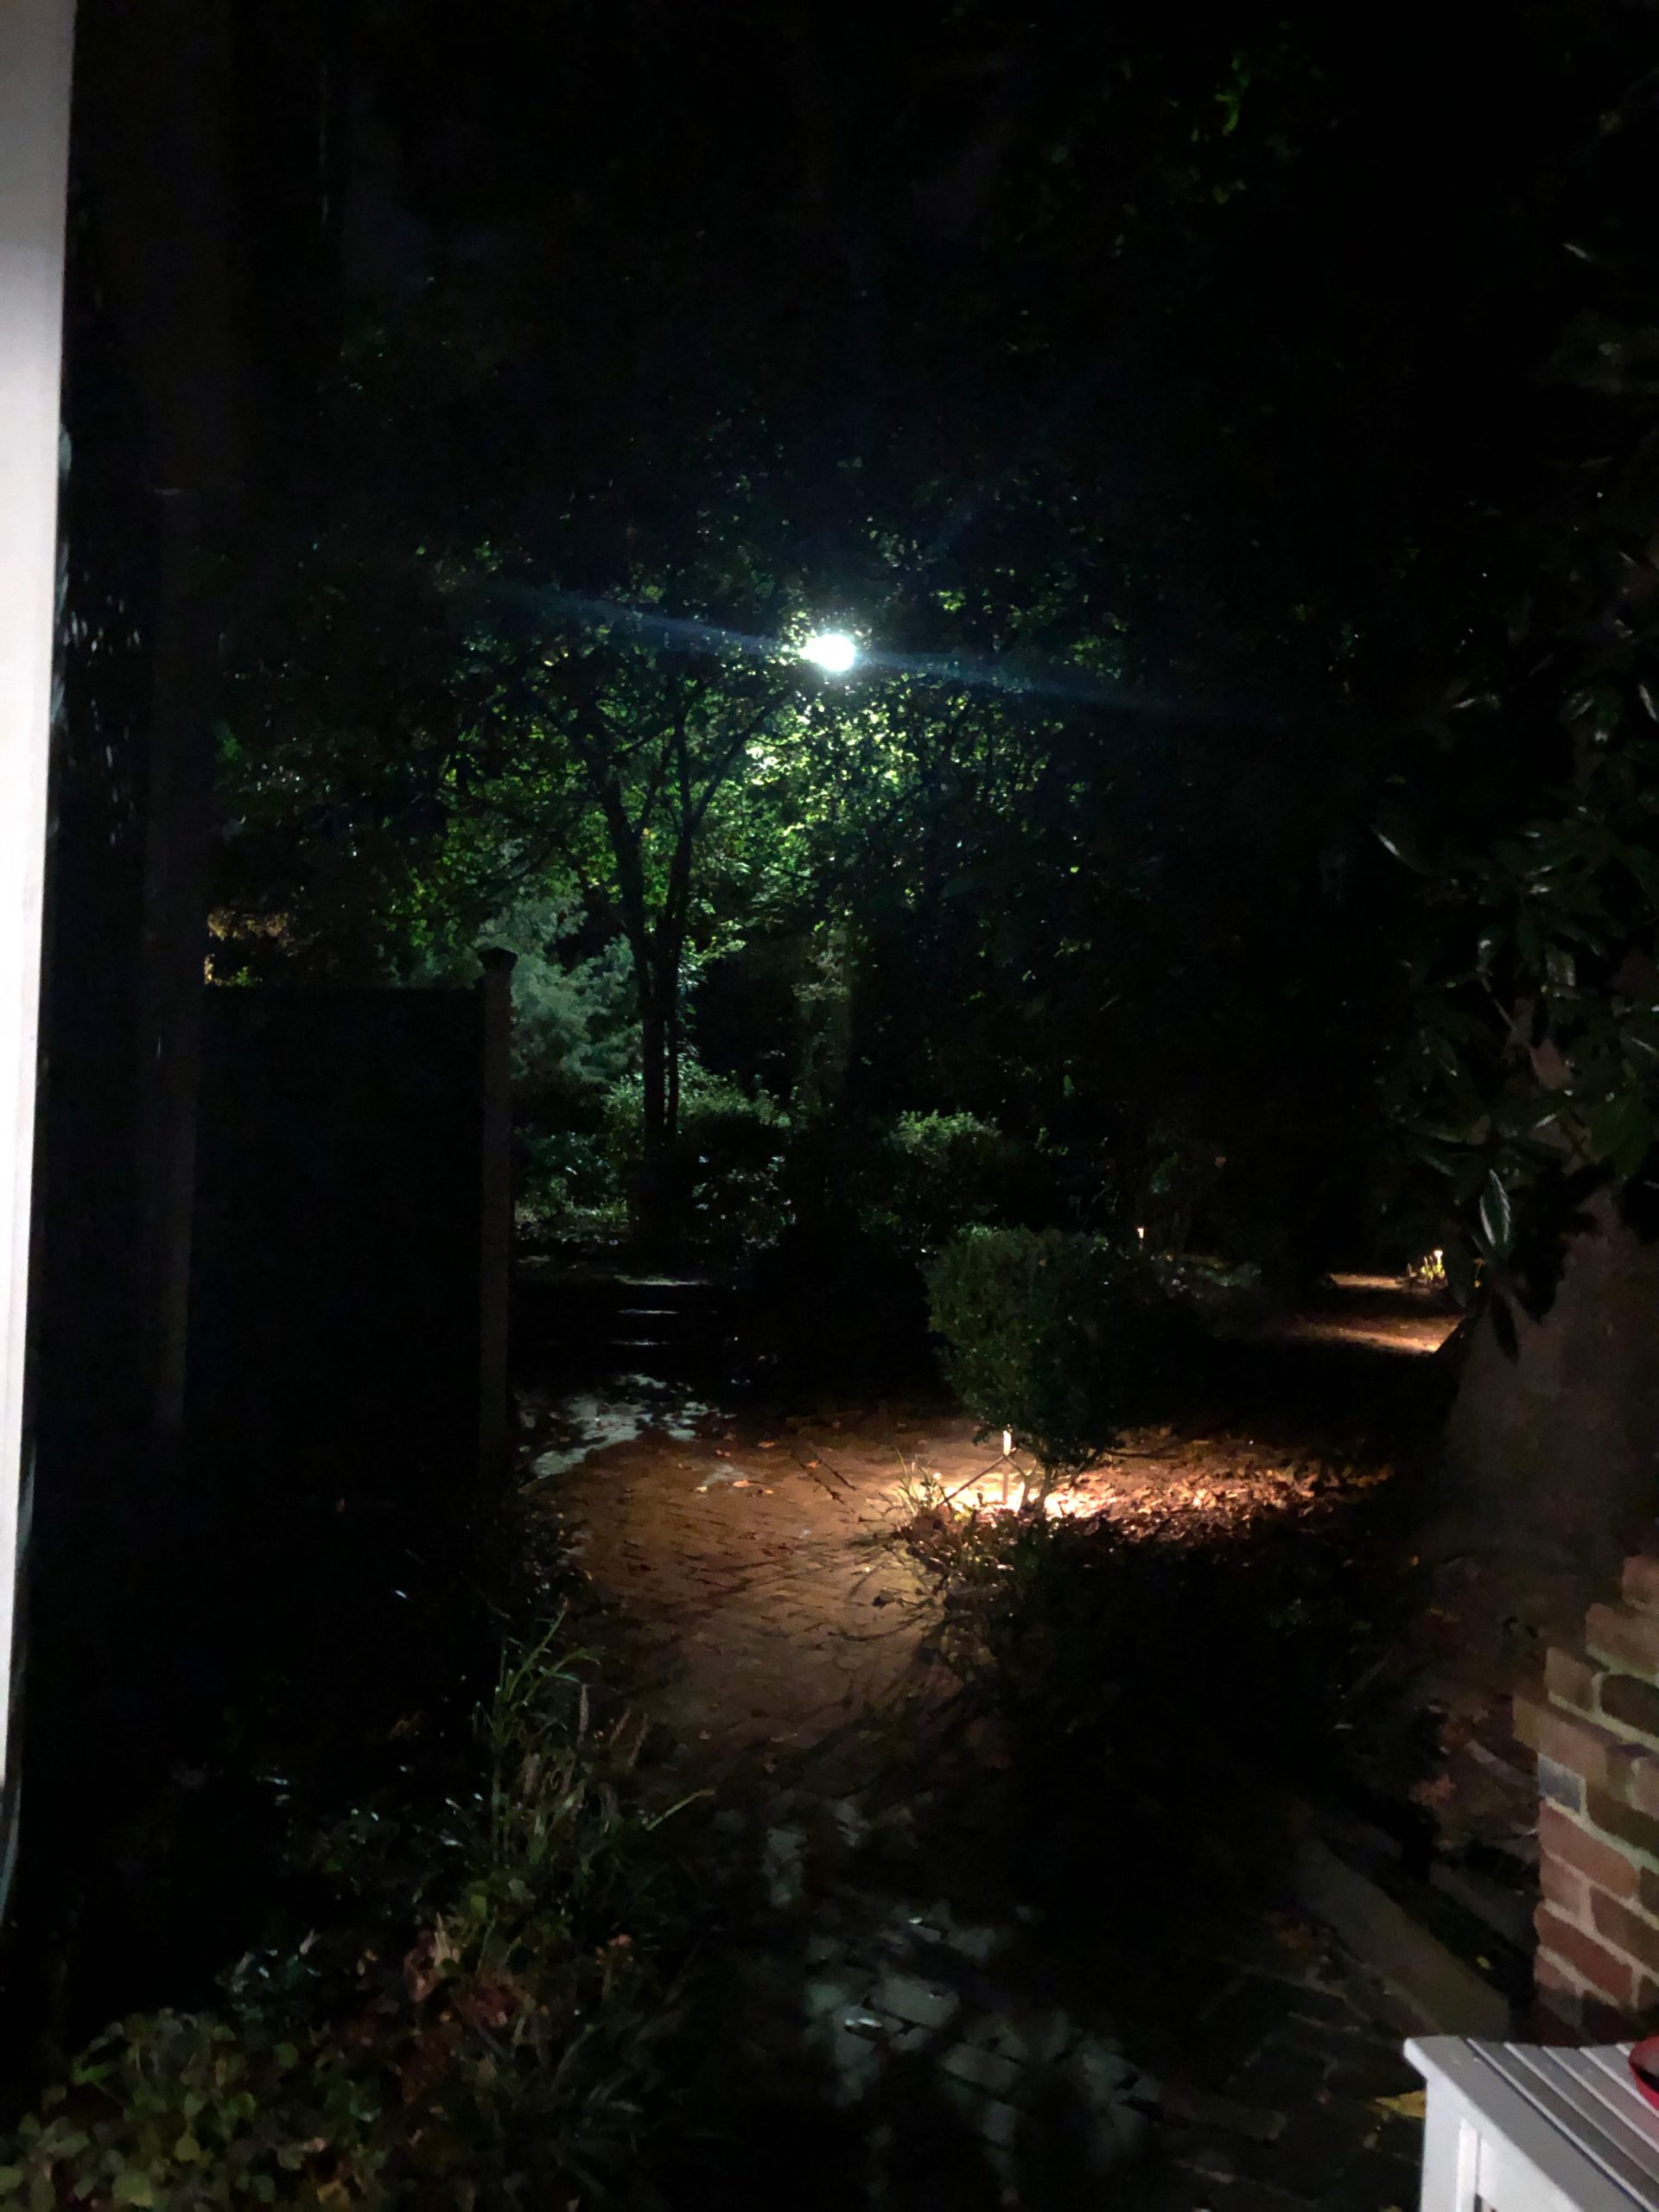 McRaven Home at Night